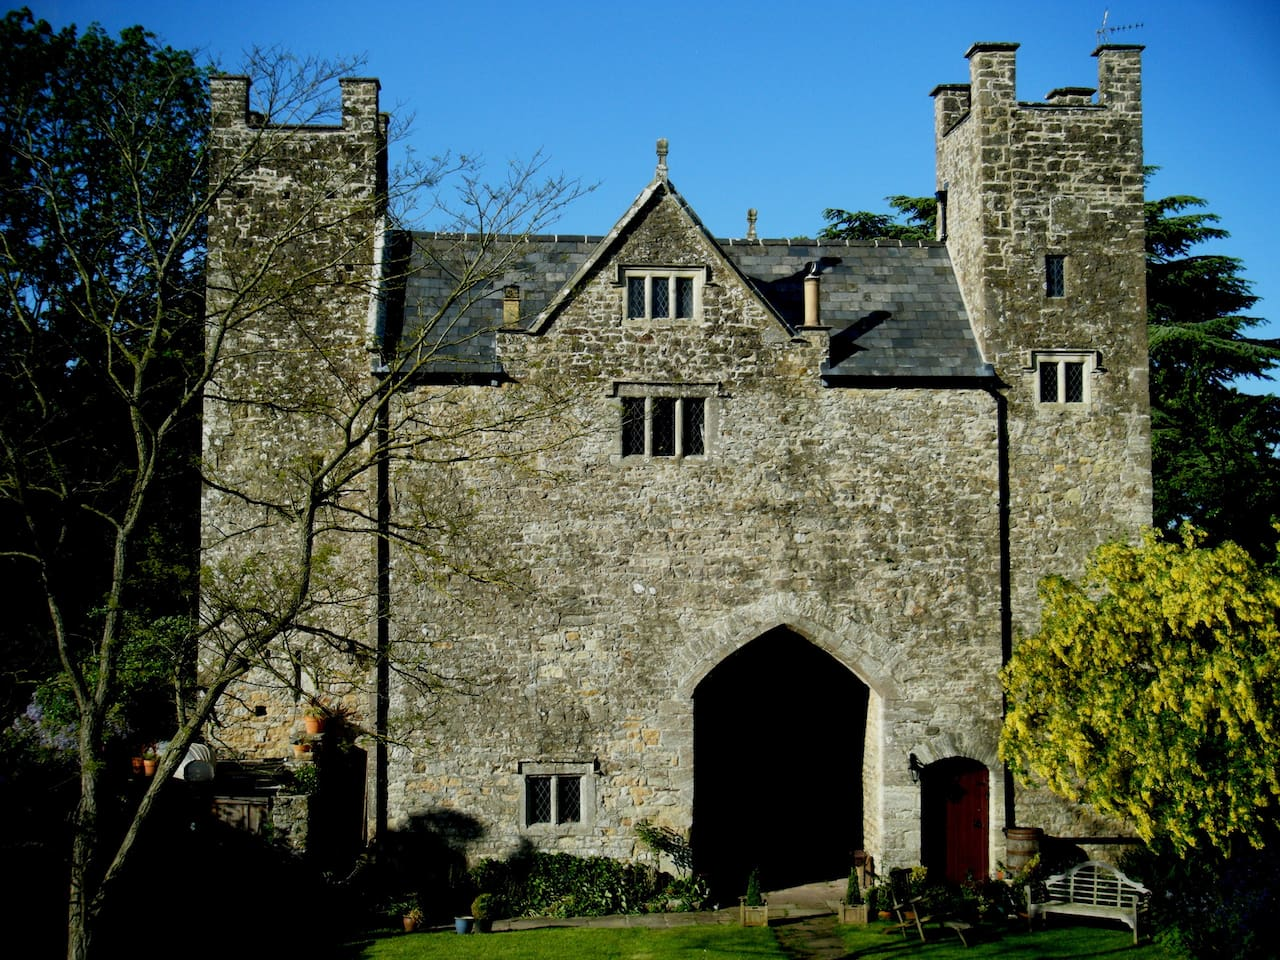 This is the Welsh Gatehouse, a self contained, luxury historic holiday let, built in approx 1270!